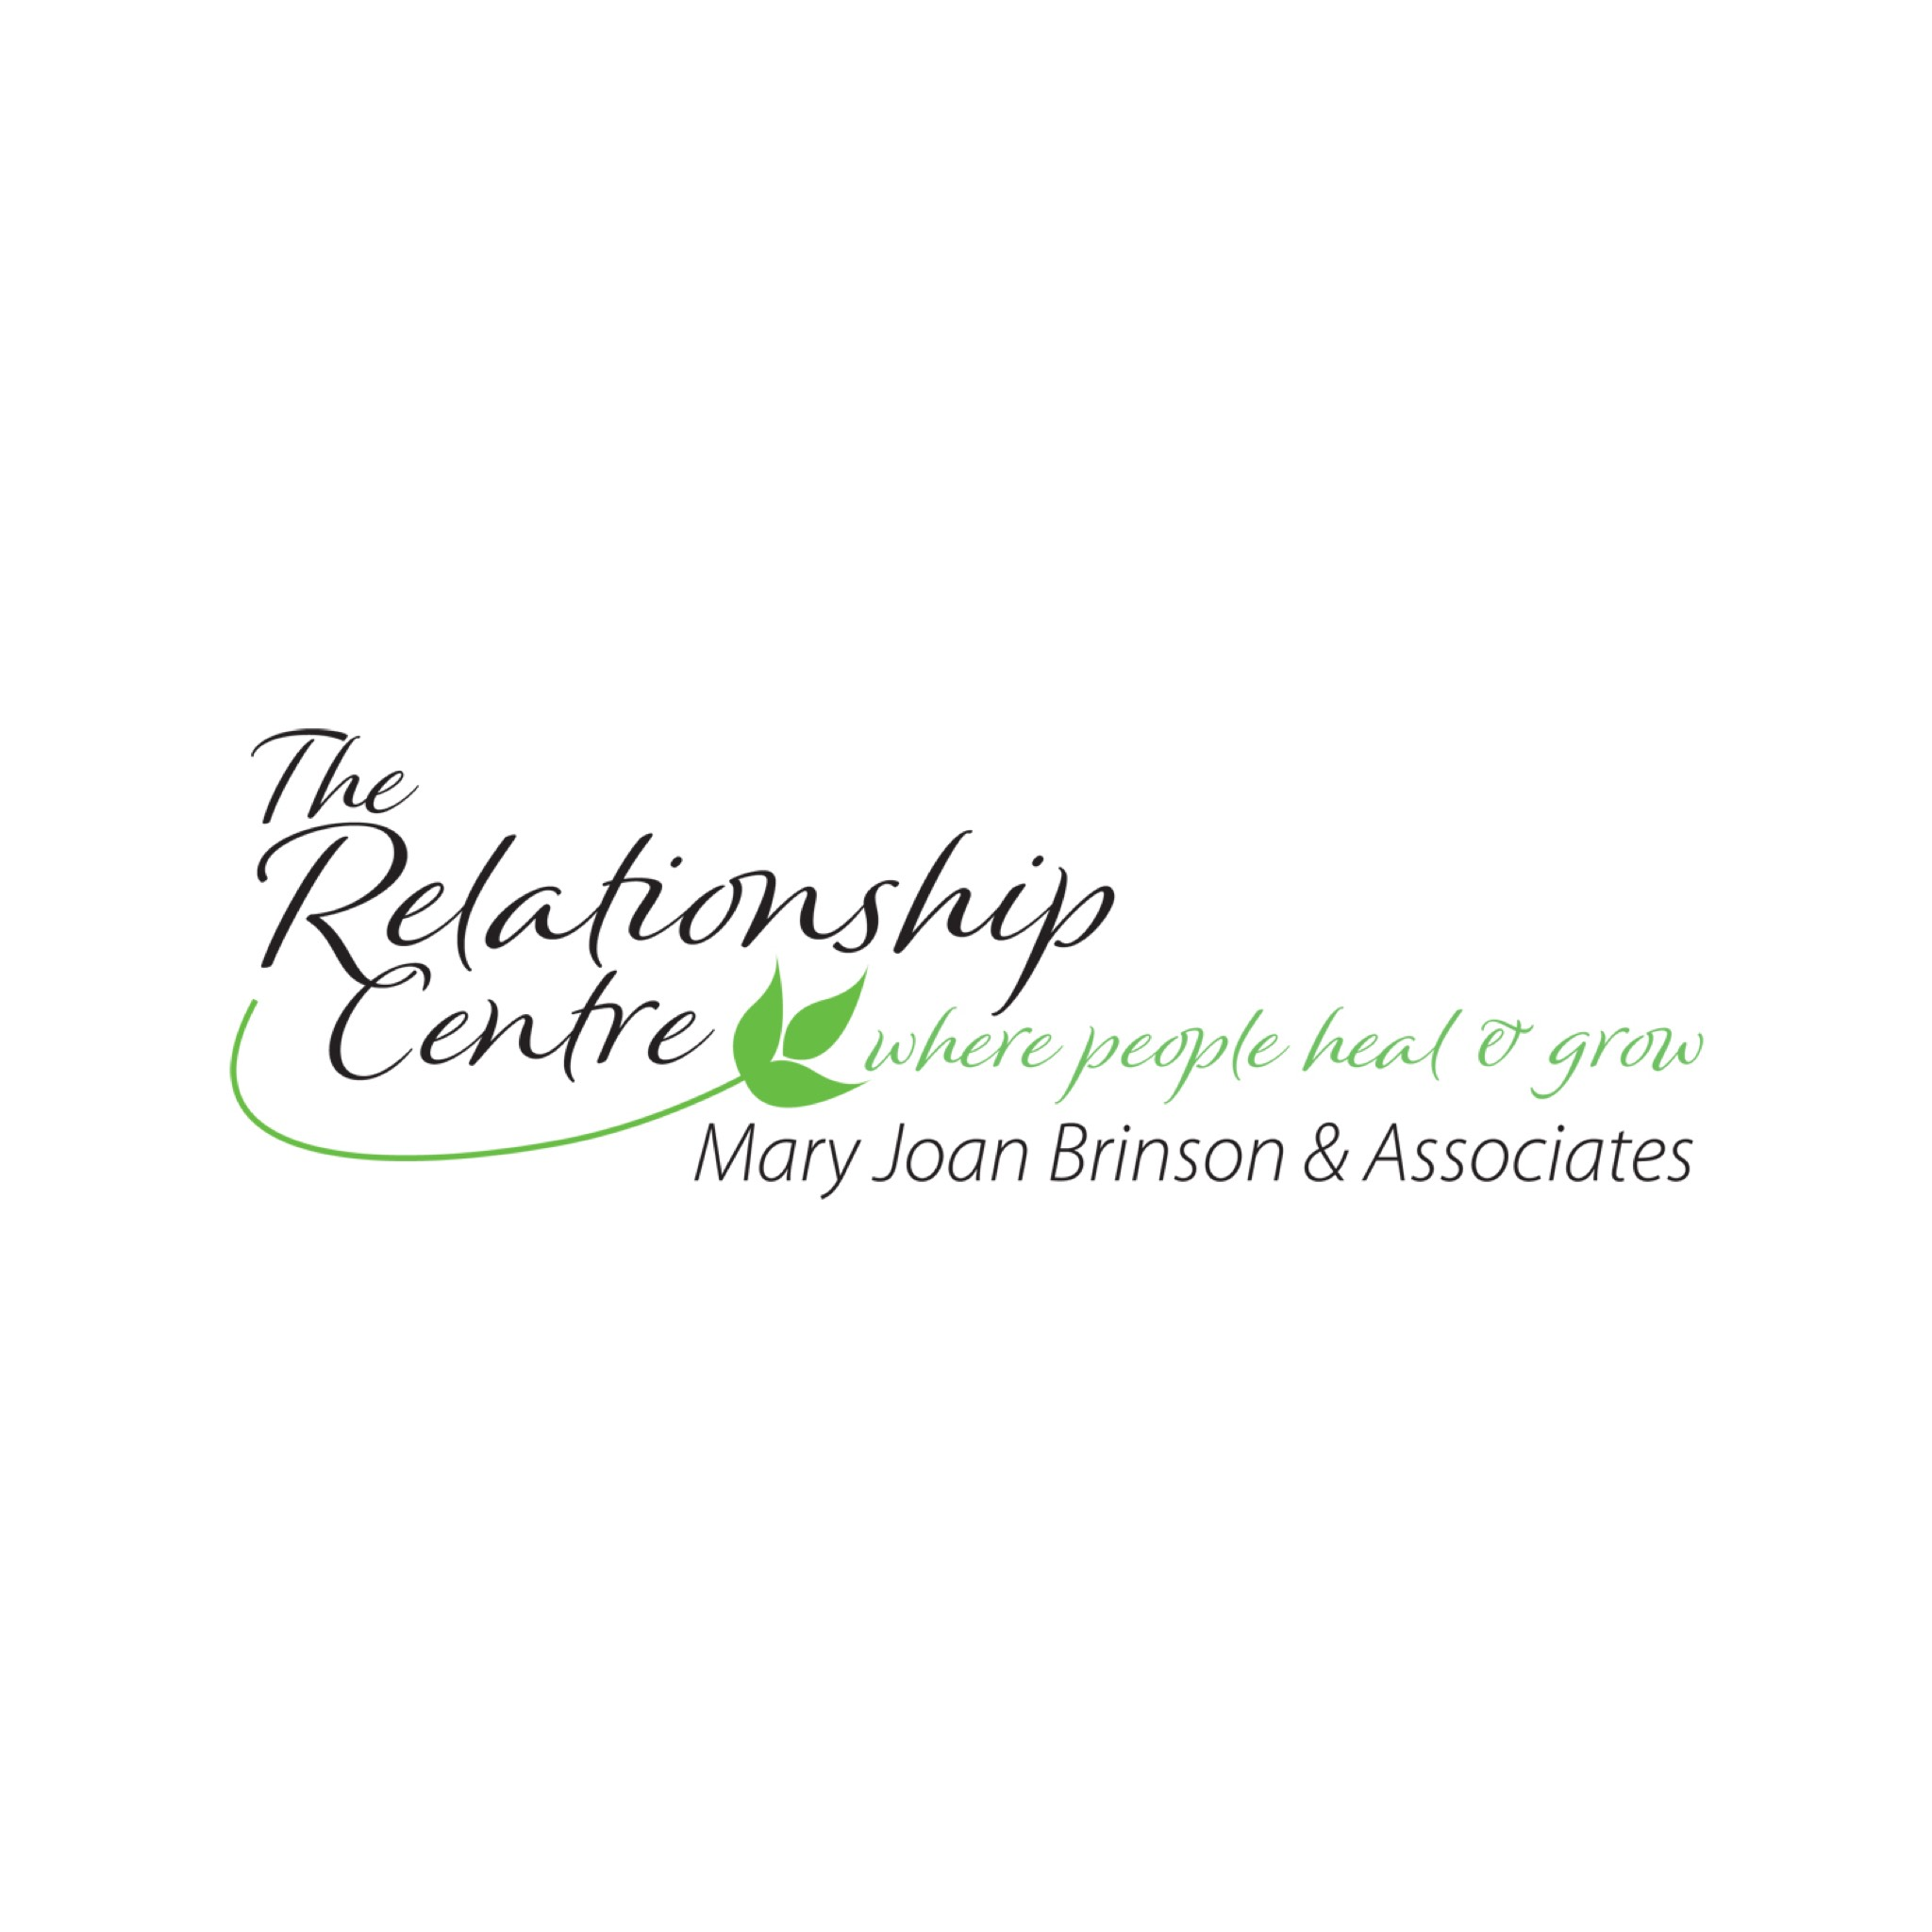 The Relationship Centre with Mary Joan Brinson & Associates